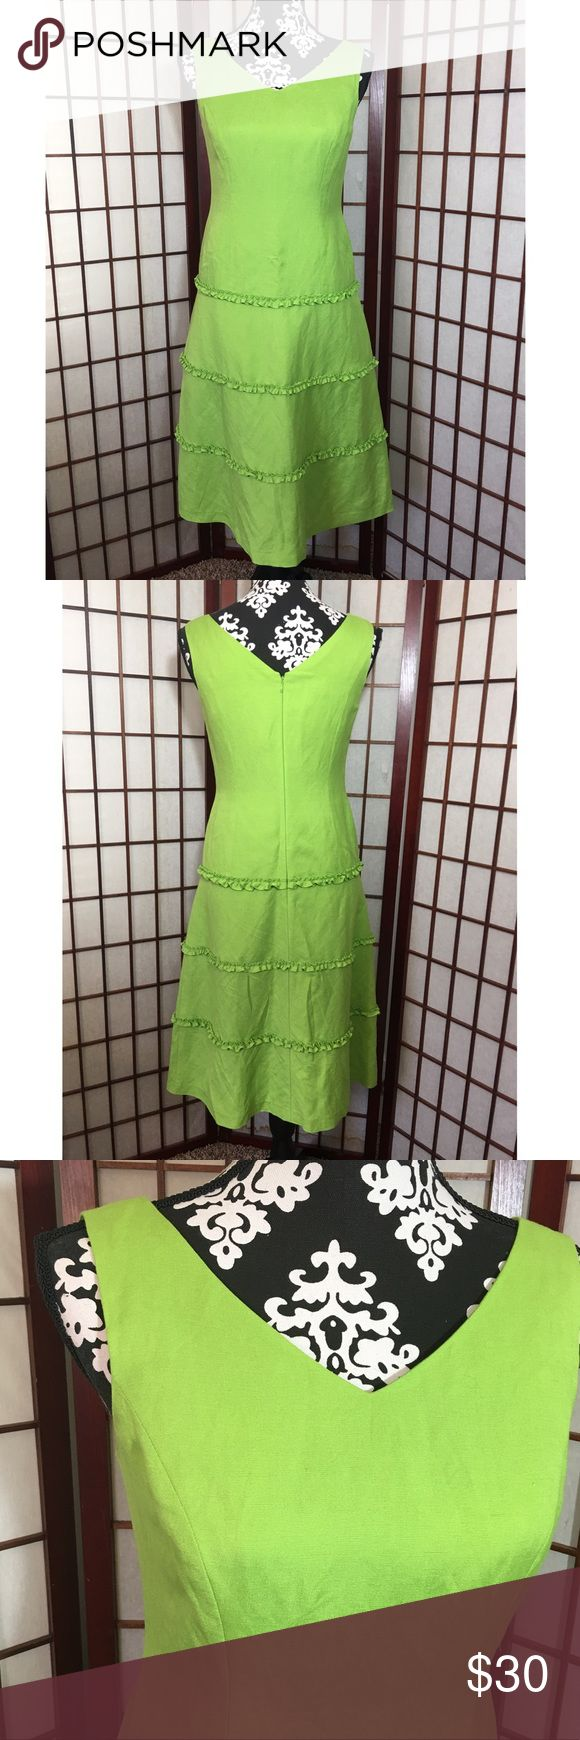 Talbots petites green linen sleeveless dress 2 Preowned Woman's Talbots petites green linen and rayon sleeveless dress lined zipper back with a snap on top ruffles on the bottom size 2 see measurements in pictures. Talbots Dresses